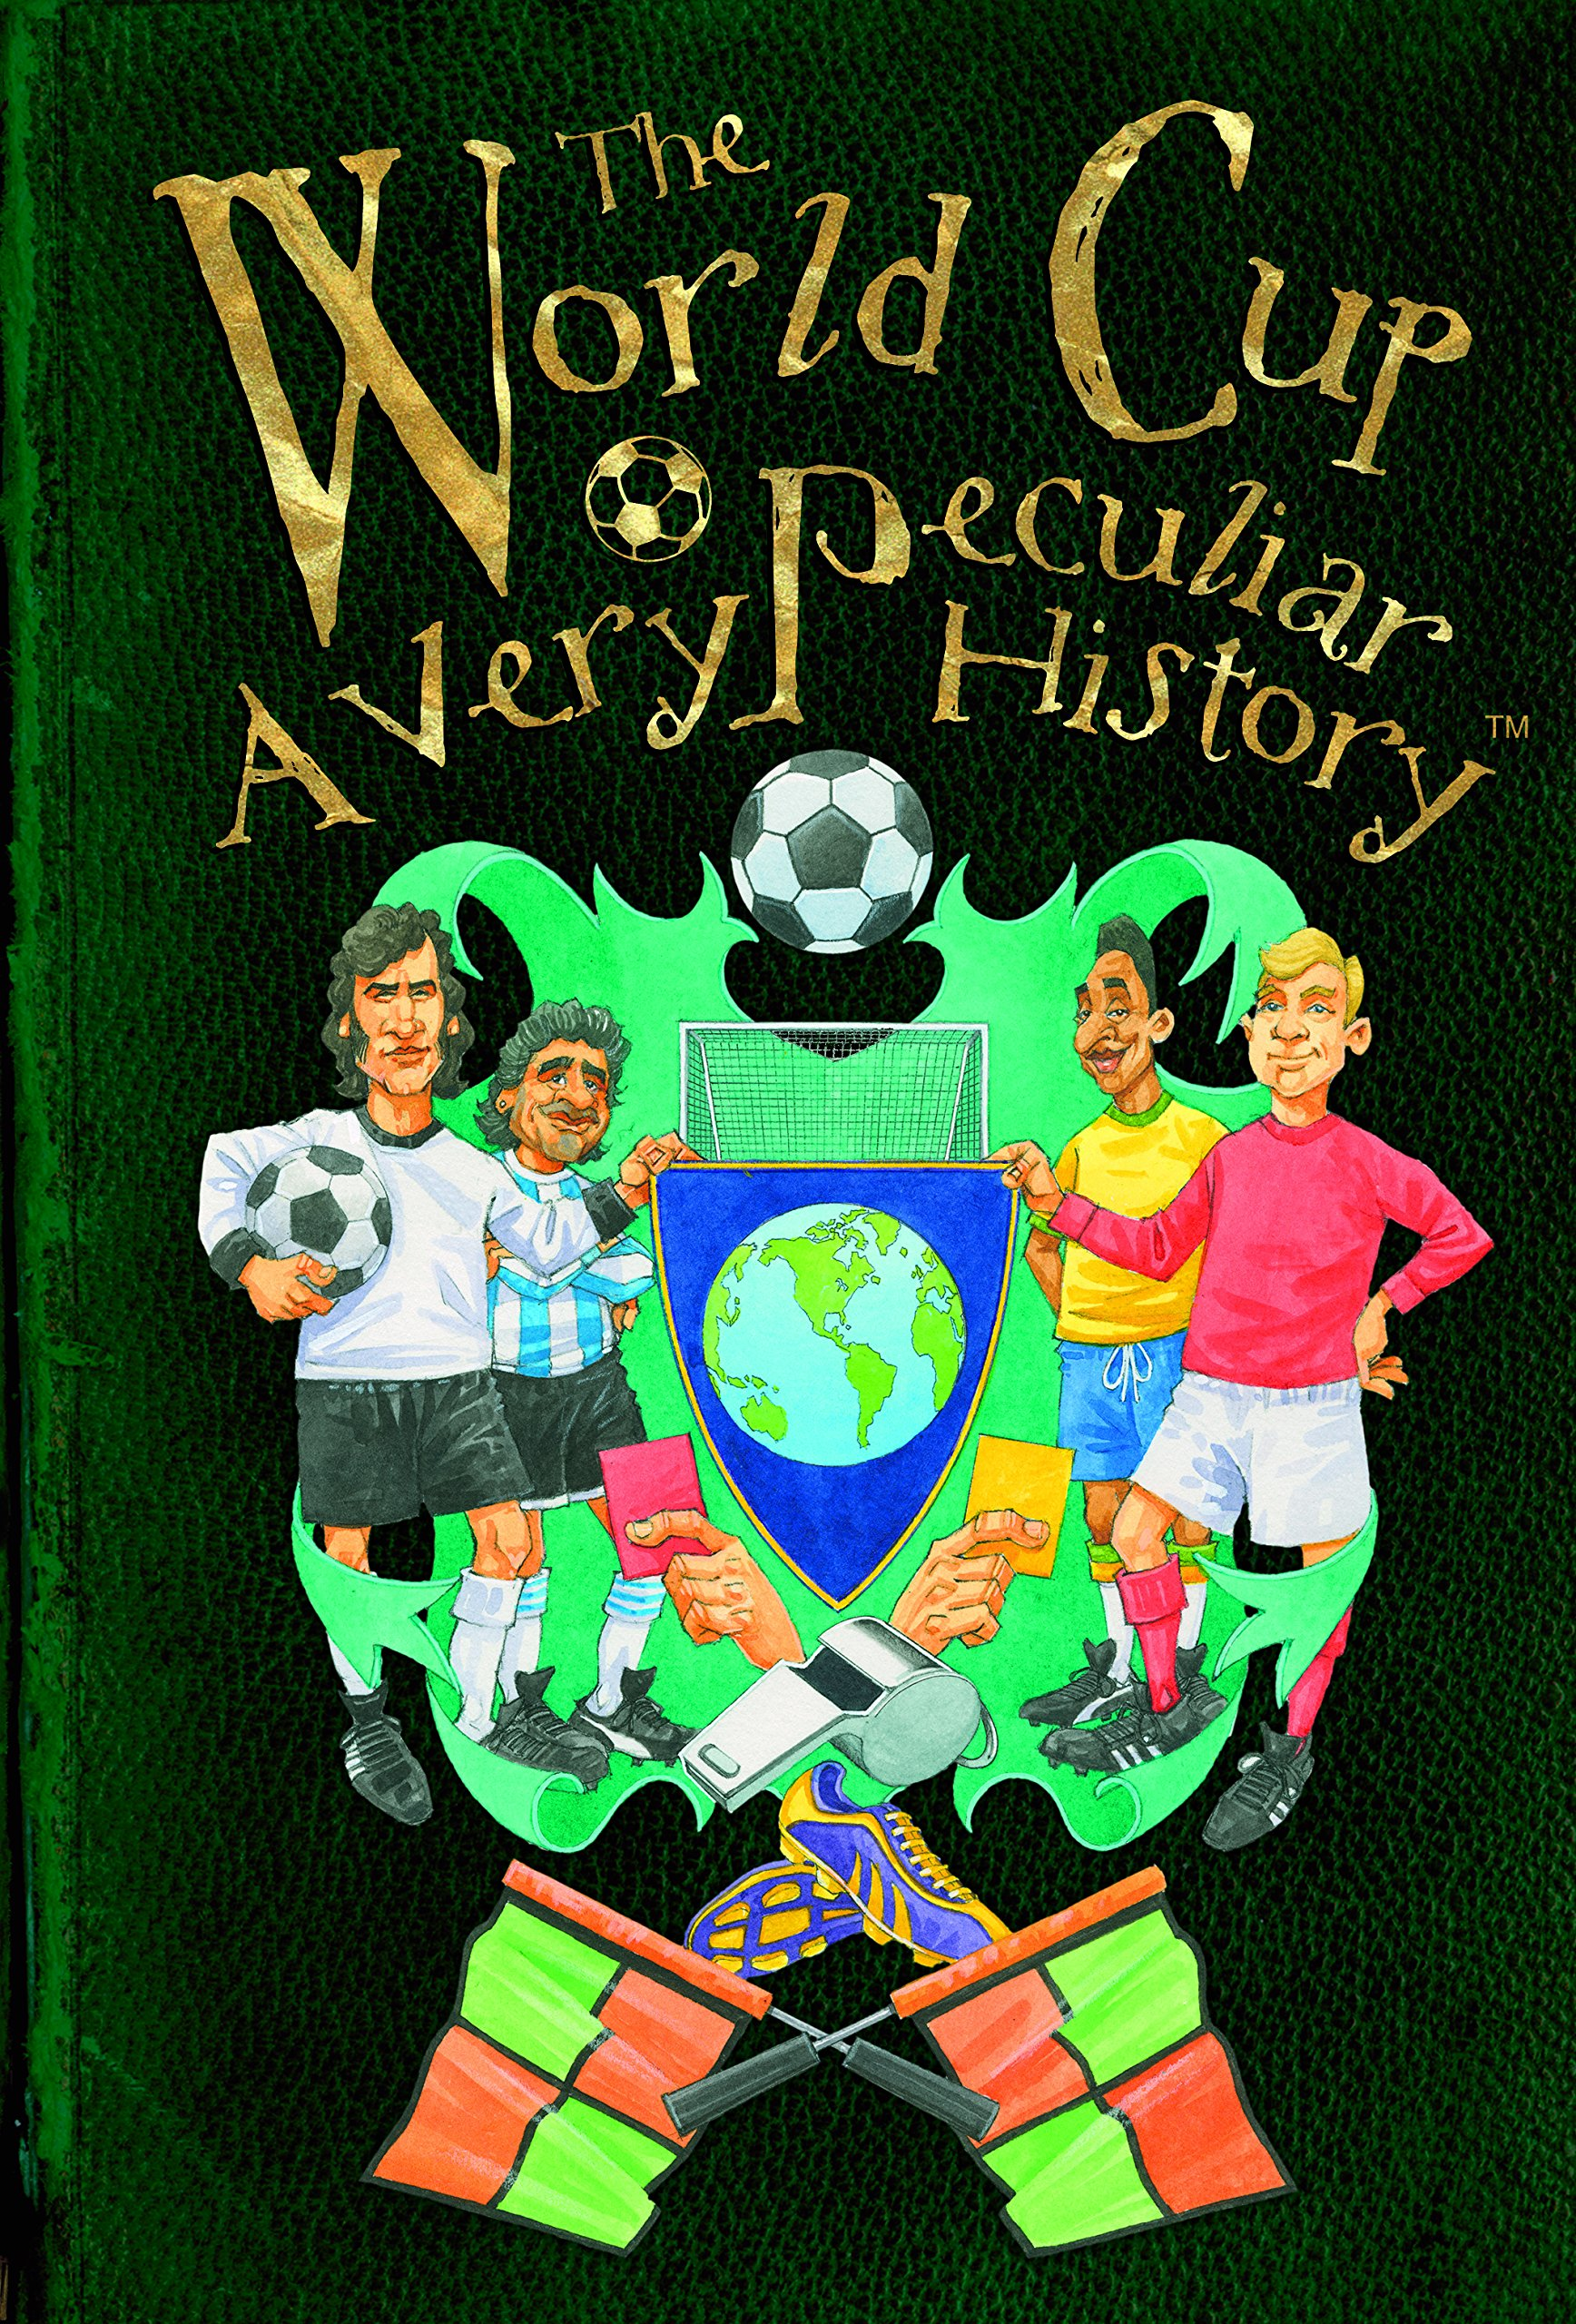 The World Cup: A Very Peculiar History pdf